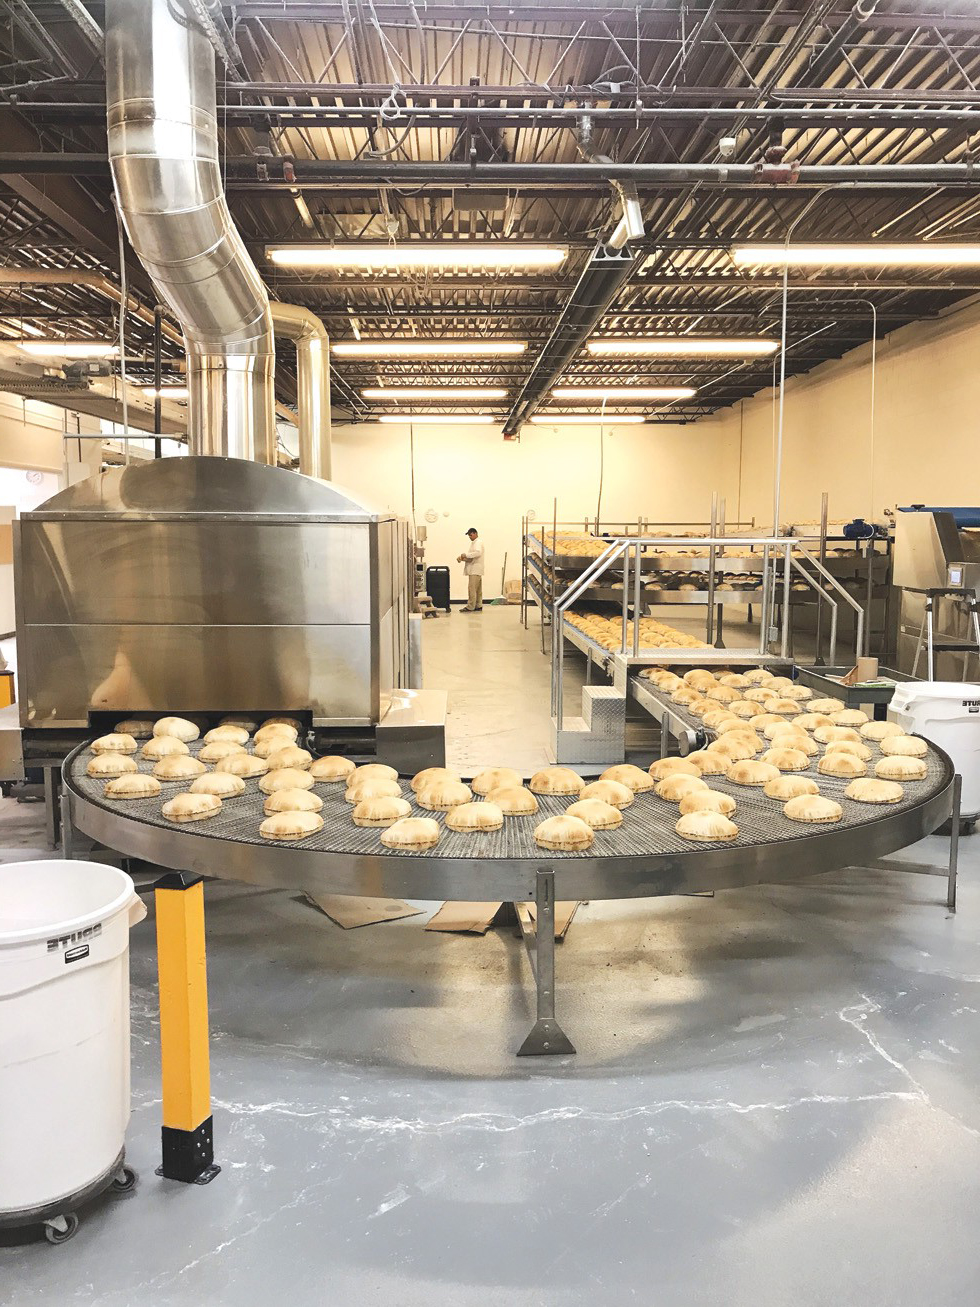 chain of production of baked goods